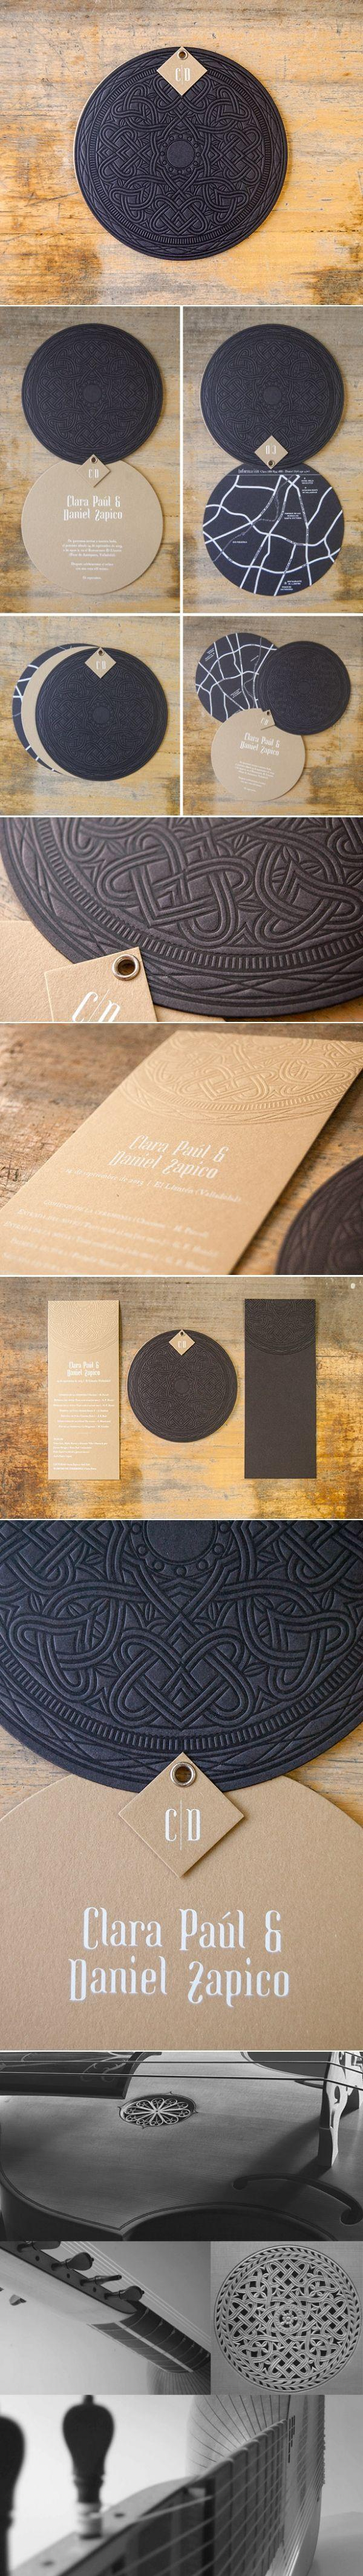 Mariage - INVITATIONS & SAVE THE DATE